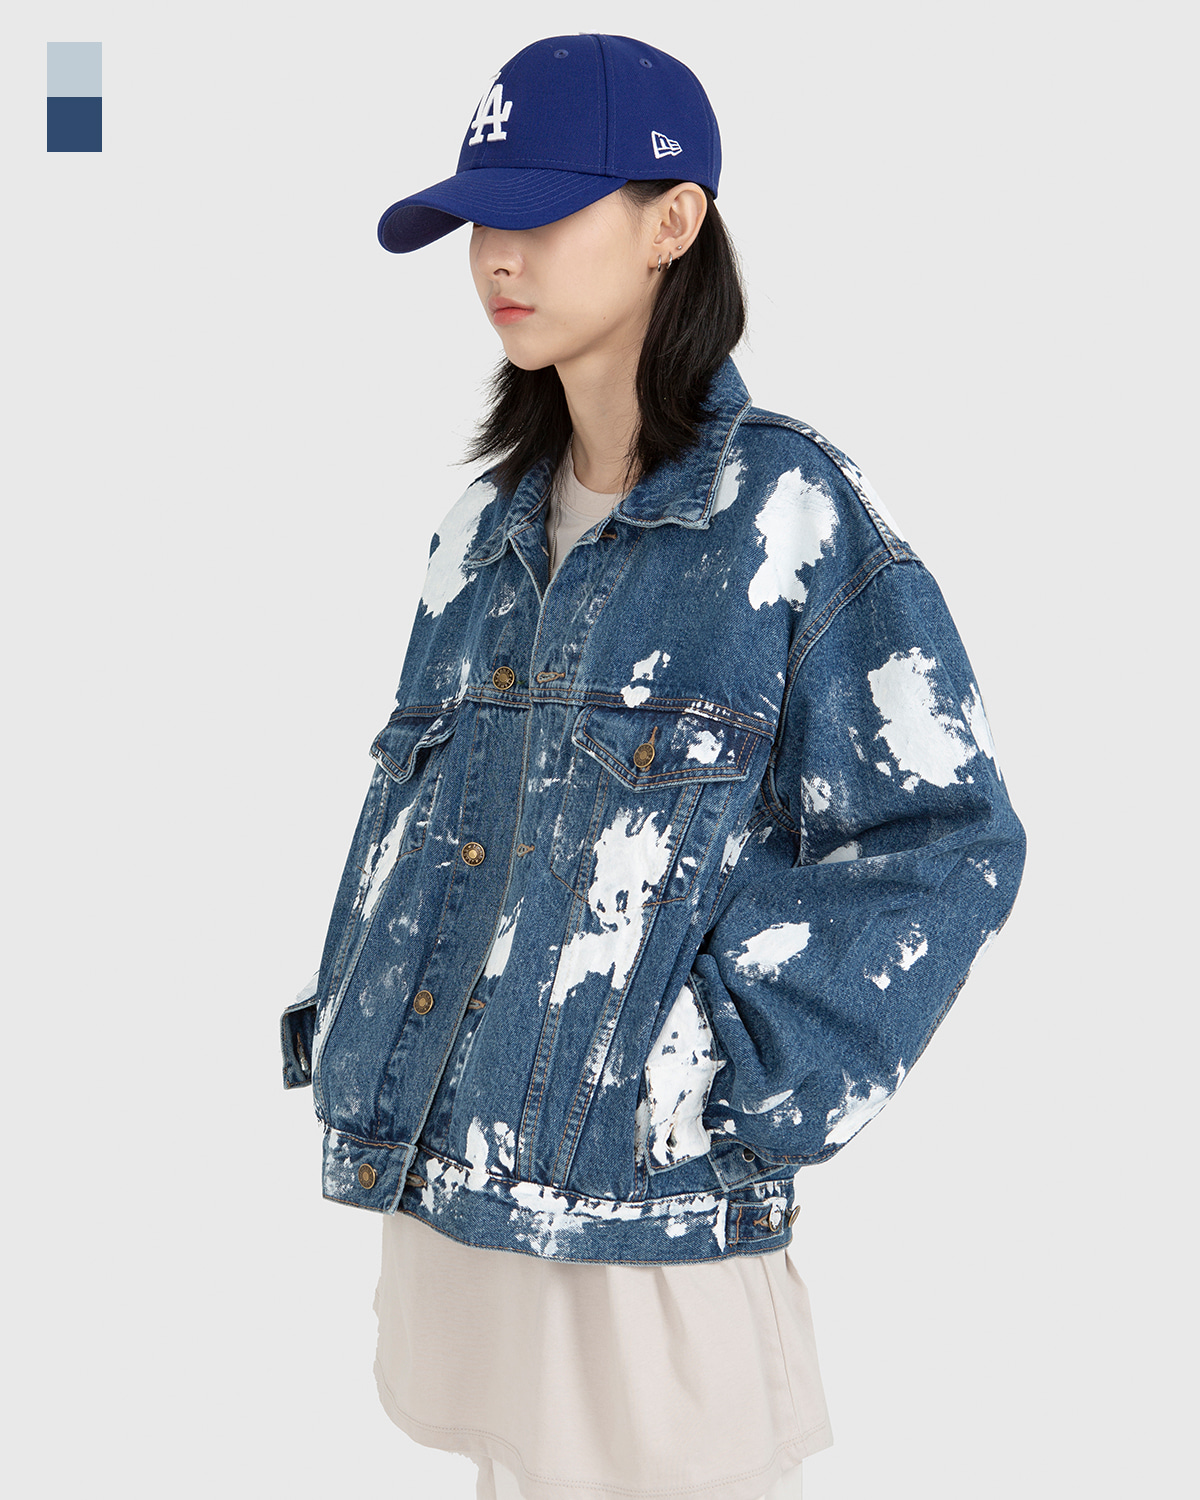 raucohouse-TOUCH PAINTED DENIM JACKET - RAUCO HOUSE♡韓國男裝外套